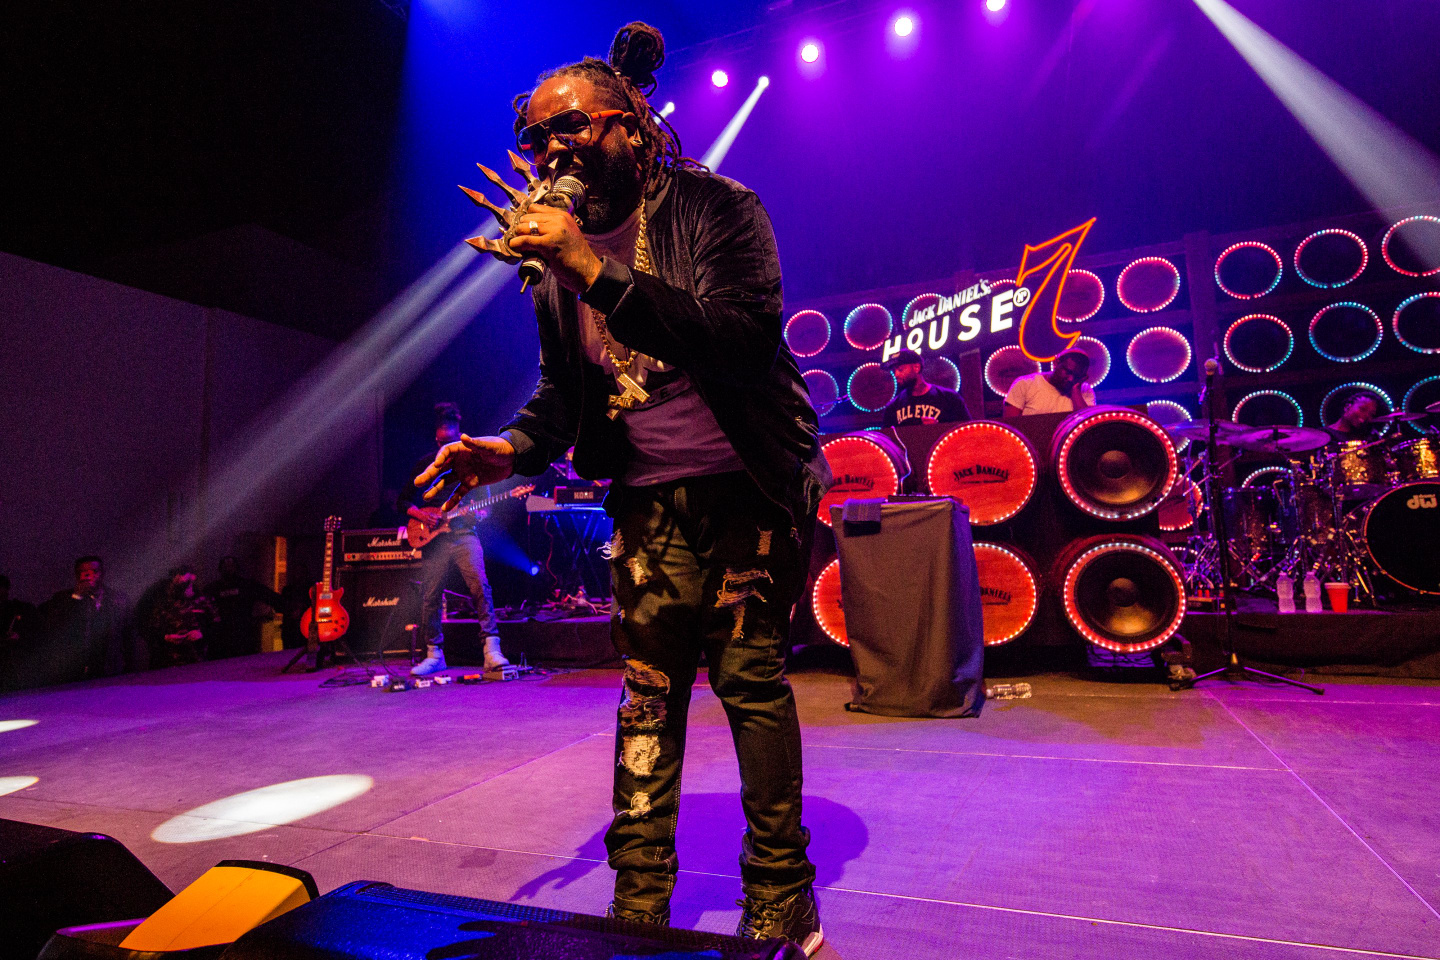 See Photos From T-Pain's Electric Live Set At House No. 7